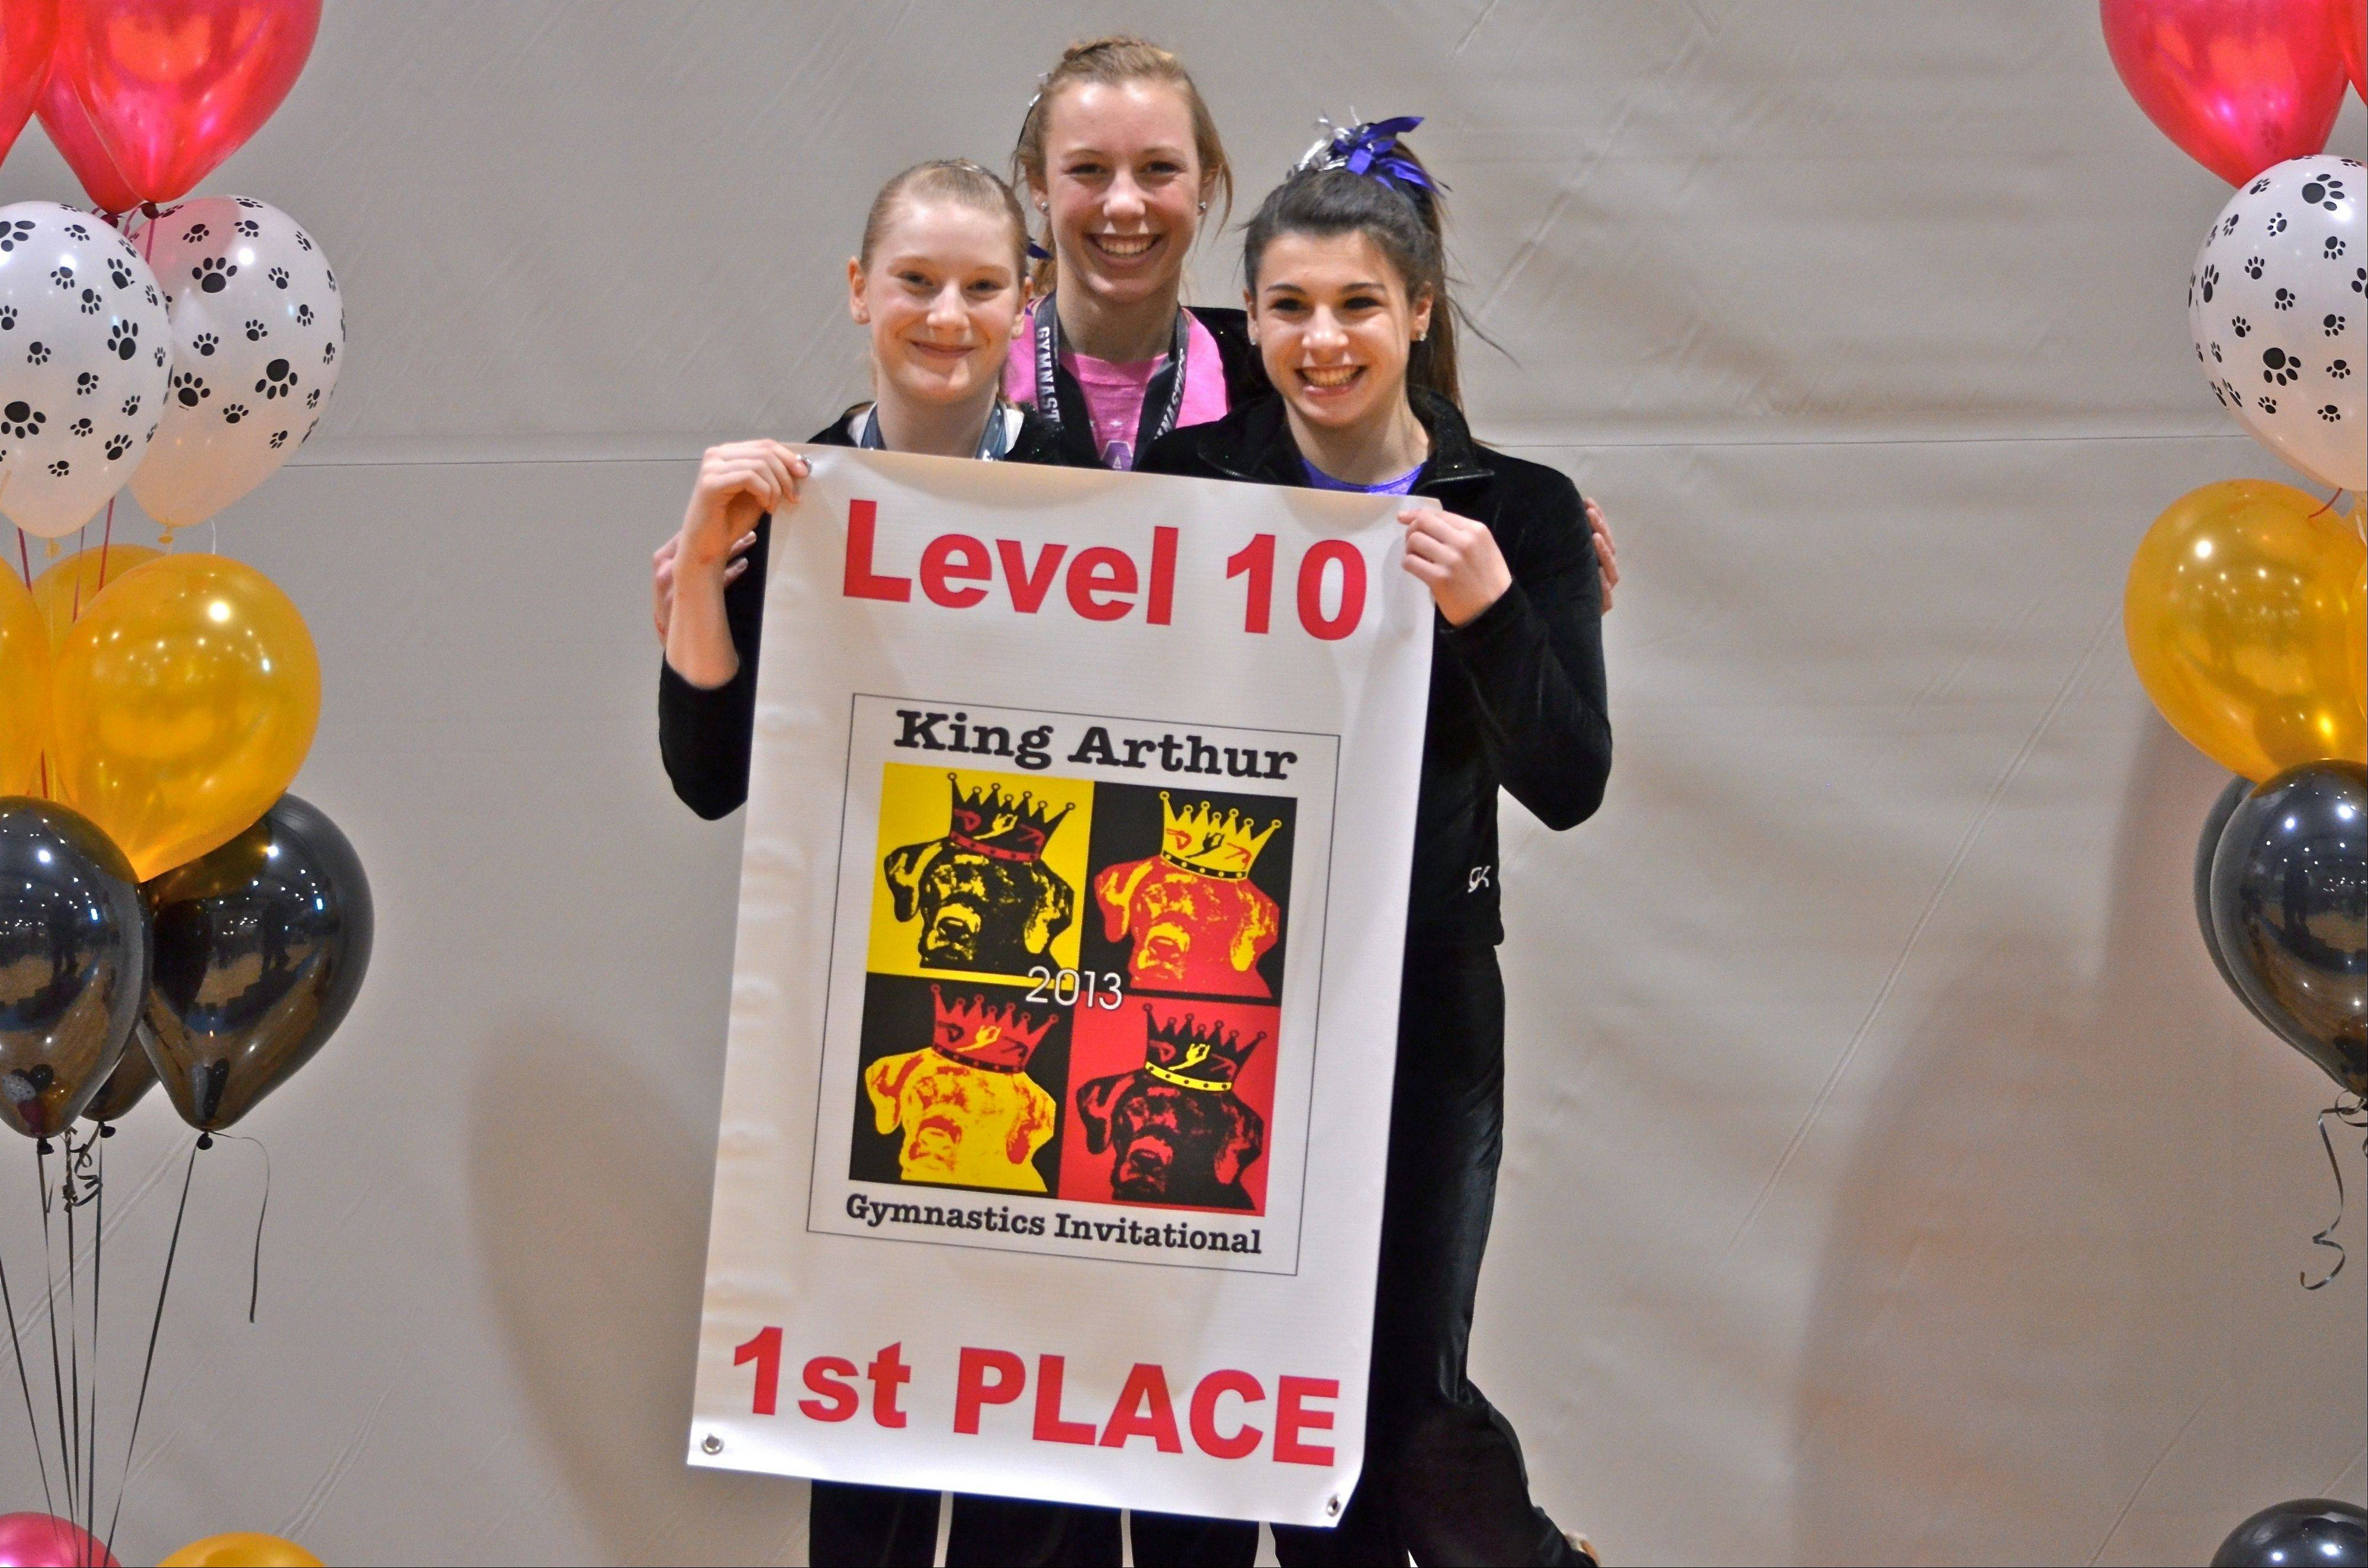 Proudly displaying their first-place banner from the recent King Arthur meet are the Level 10 girls from Ultimate Gymnastics of Gurnee. Competing at the Bourbonnais meet were, from left, Lauren Marshall, Emily Basara and Ally Hoyer.